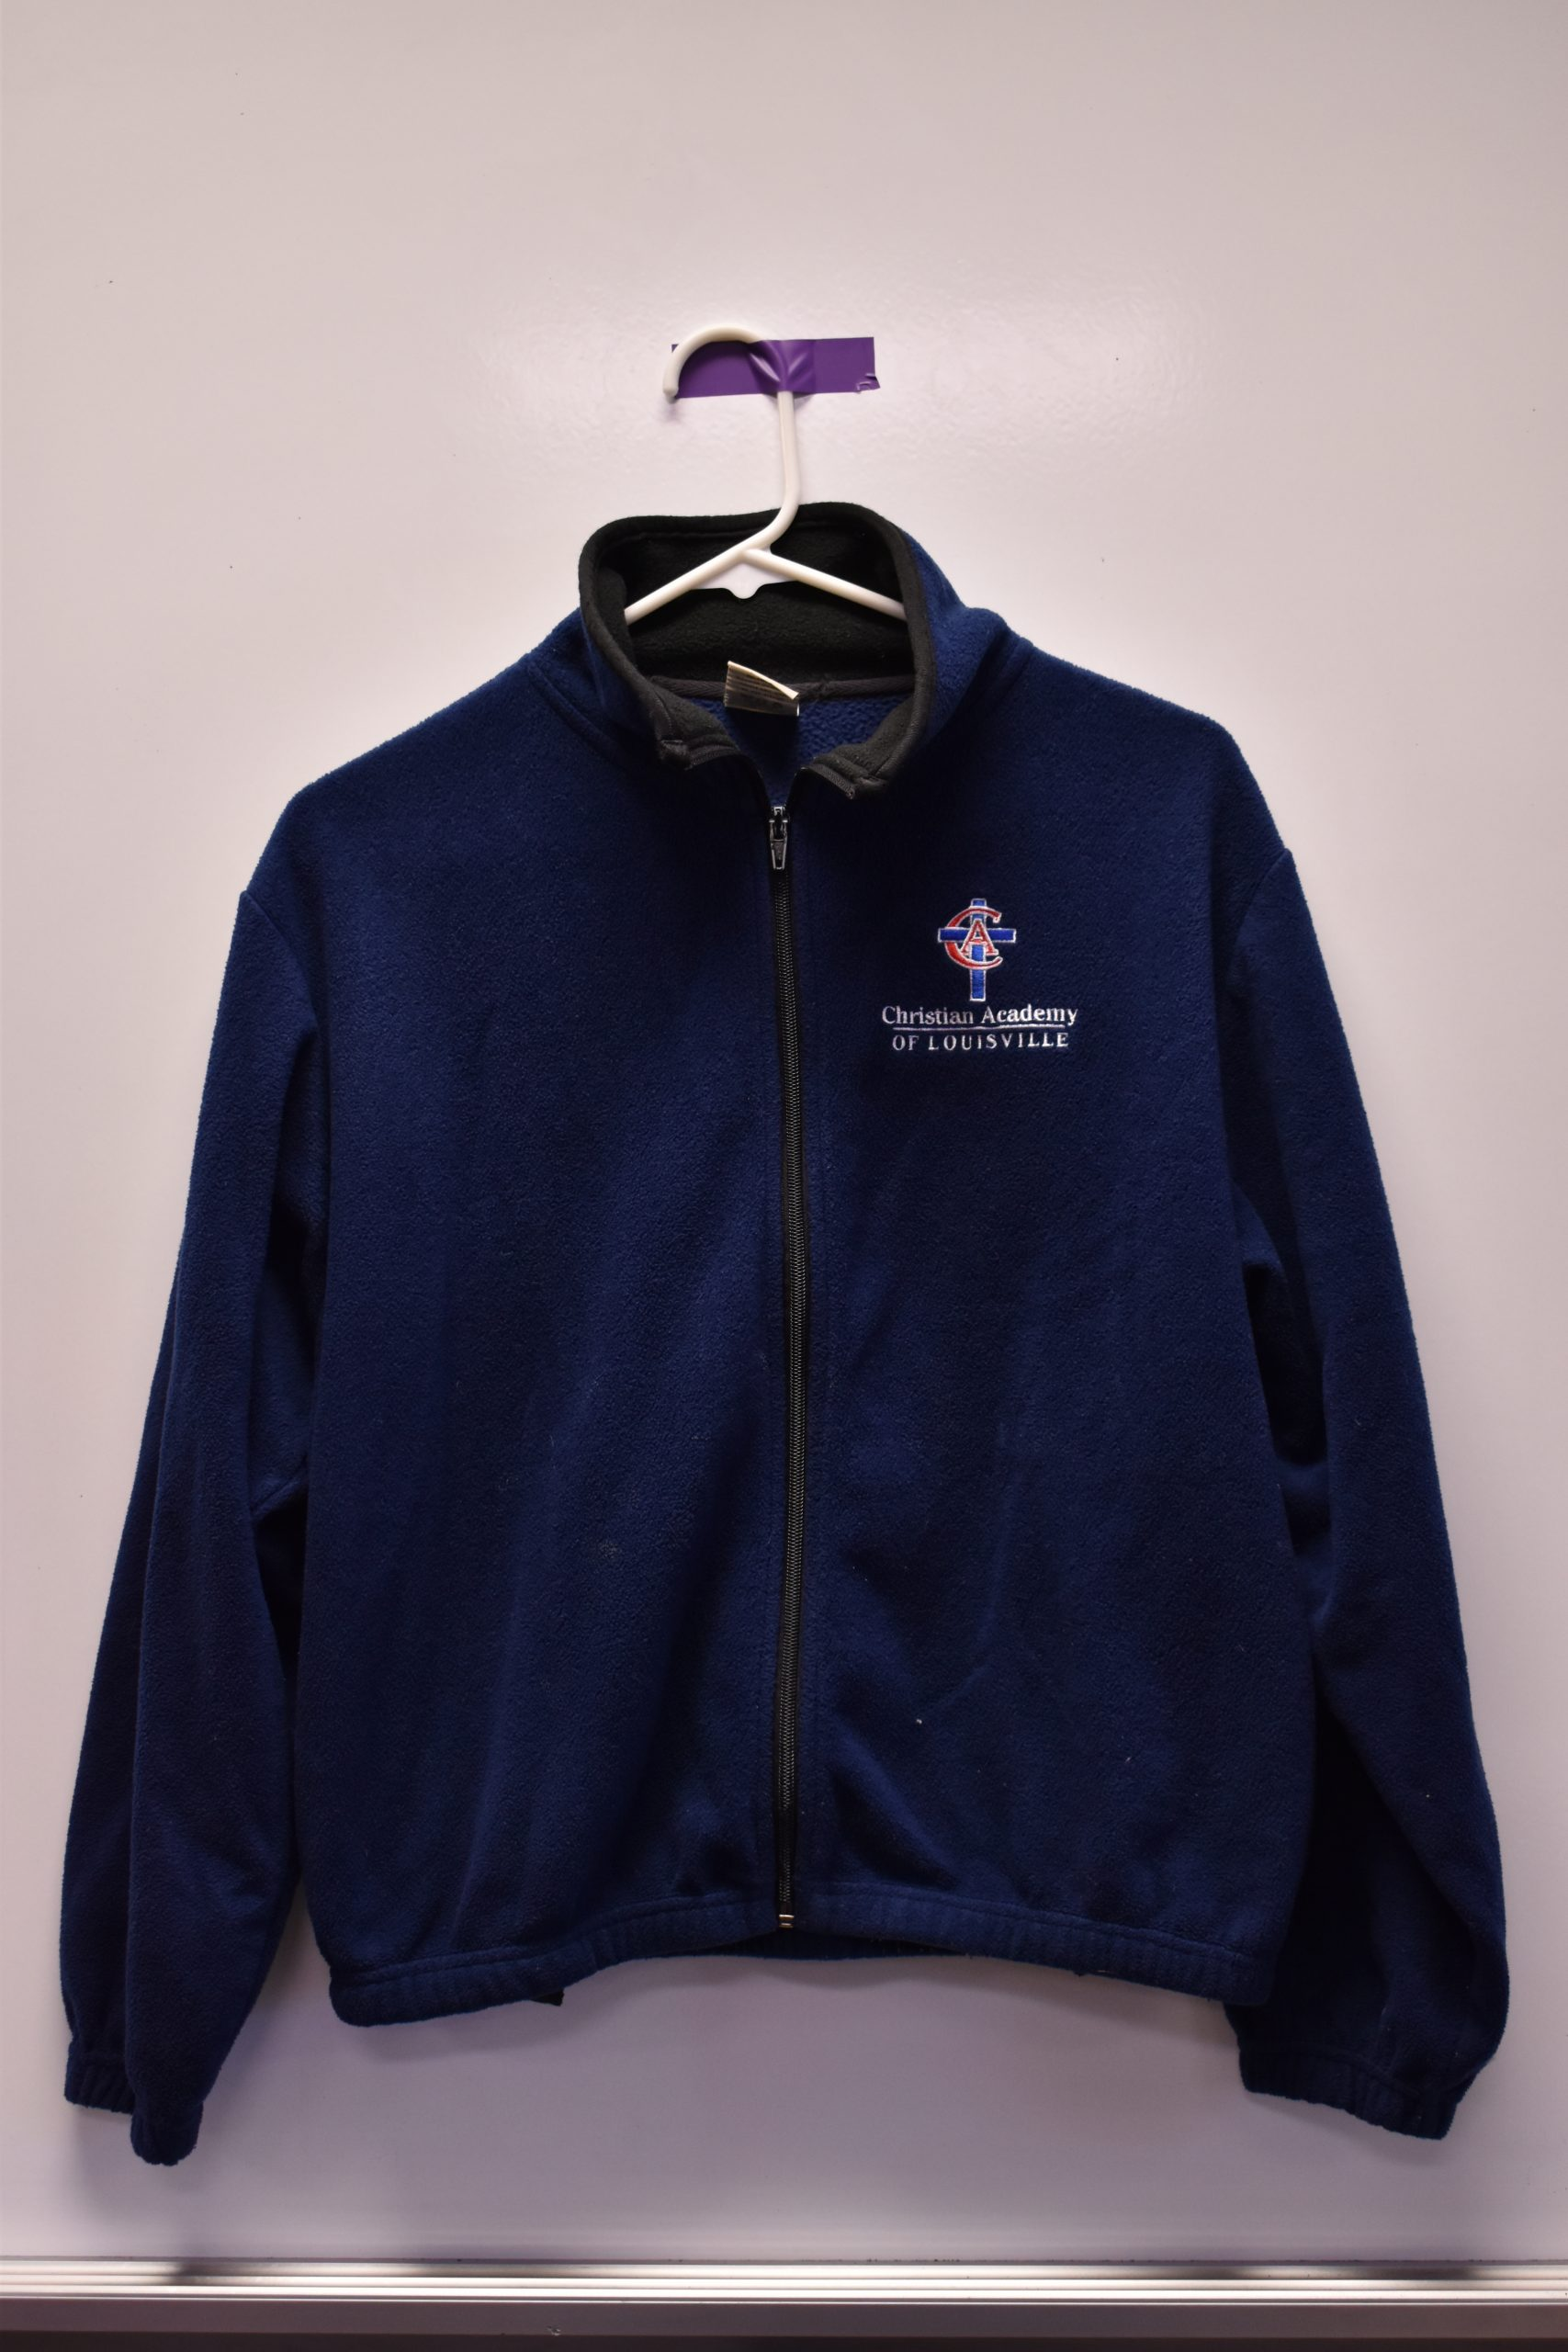 Christian Academy School System | Christian Academy of Louisville | Virtual Uniform Closet | Uniform | Fleece